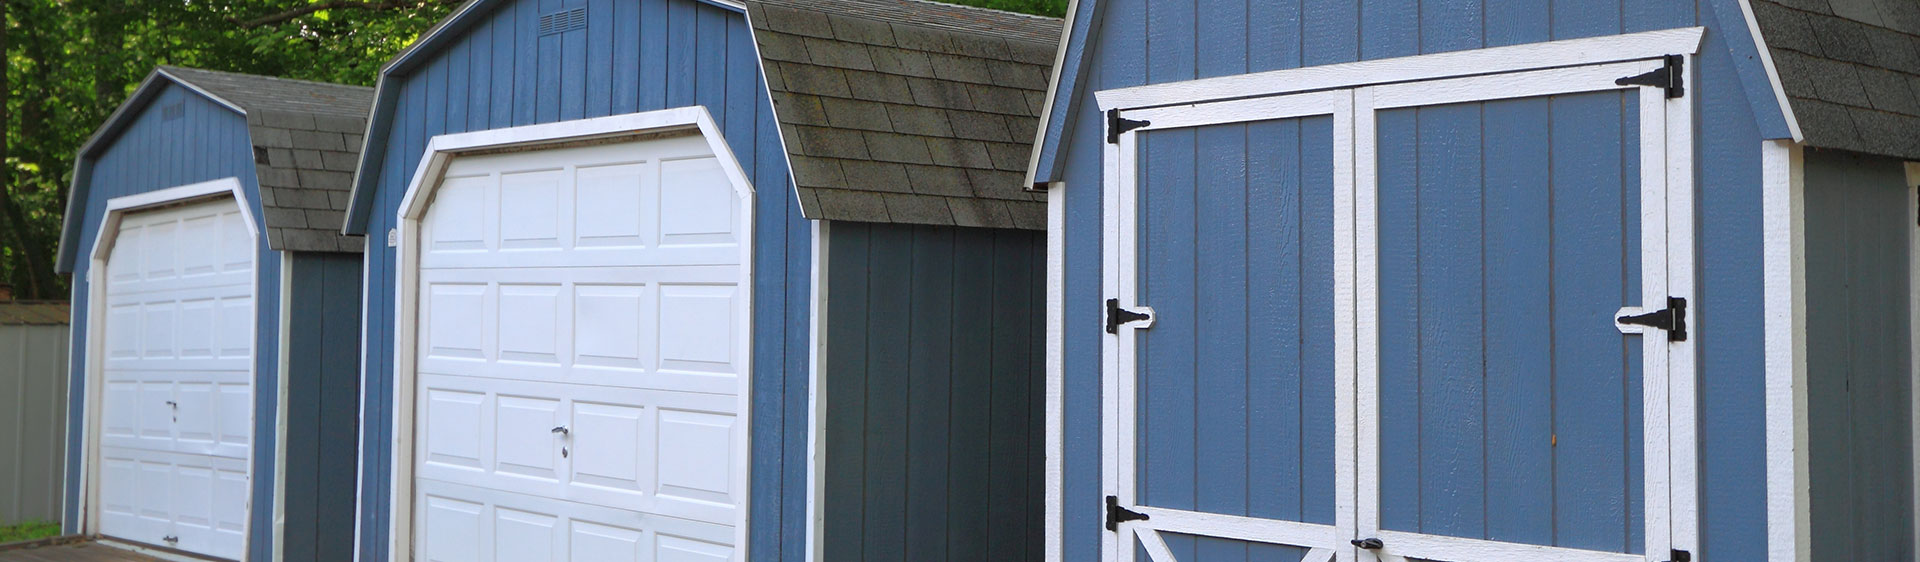 Houghton Portable Sheds, Roof Repair and Pole Barn Builder